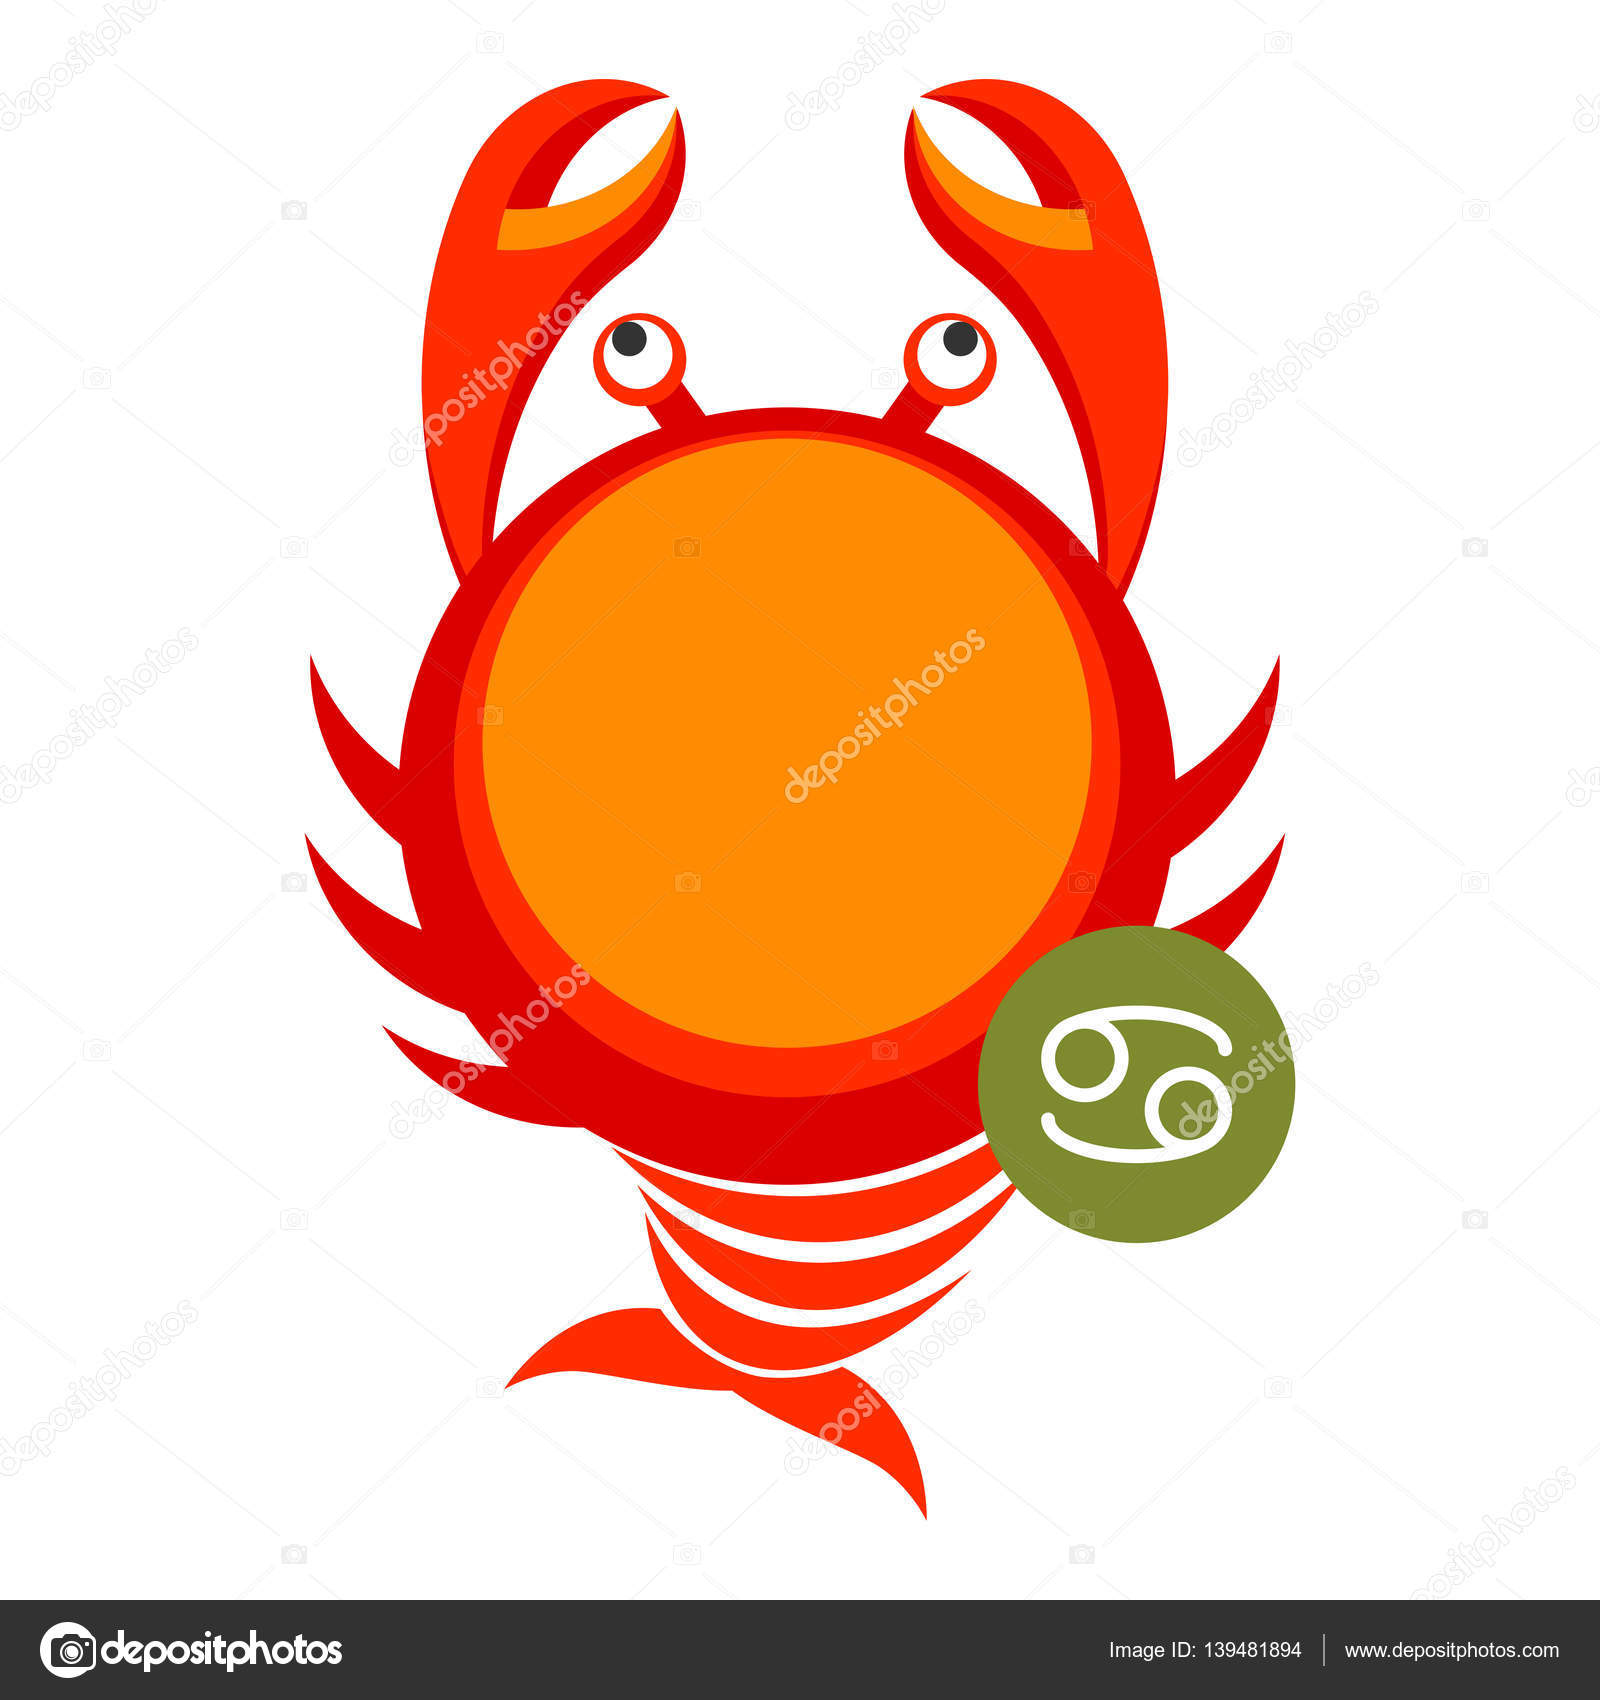 Cancer astrology sign isolated on white horoscope zodiac symbol cancer astrology sign isolated on white horoscope modern symbol for cancer represents pincers of crab zodiac constellations astrological mythology icon biocorpaavc